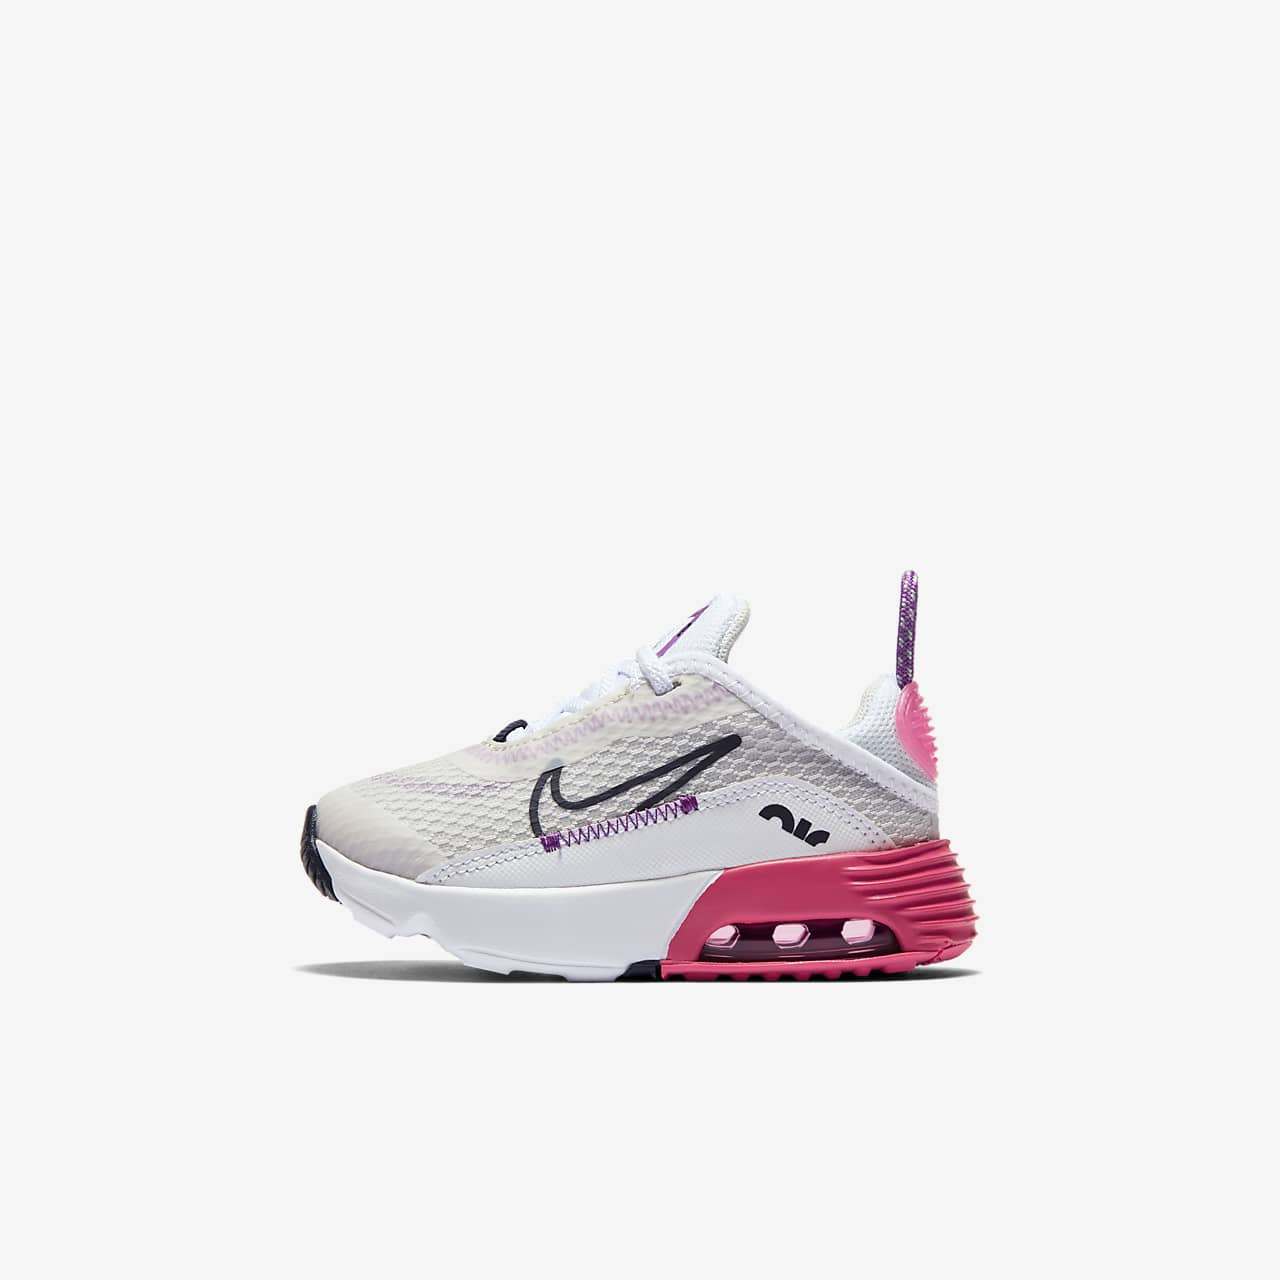 Nike Air Max 2090 Baby and Toddler Shoe